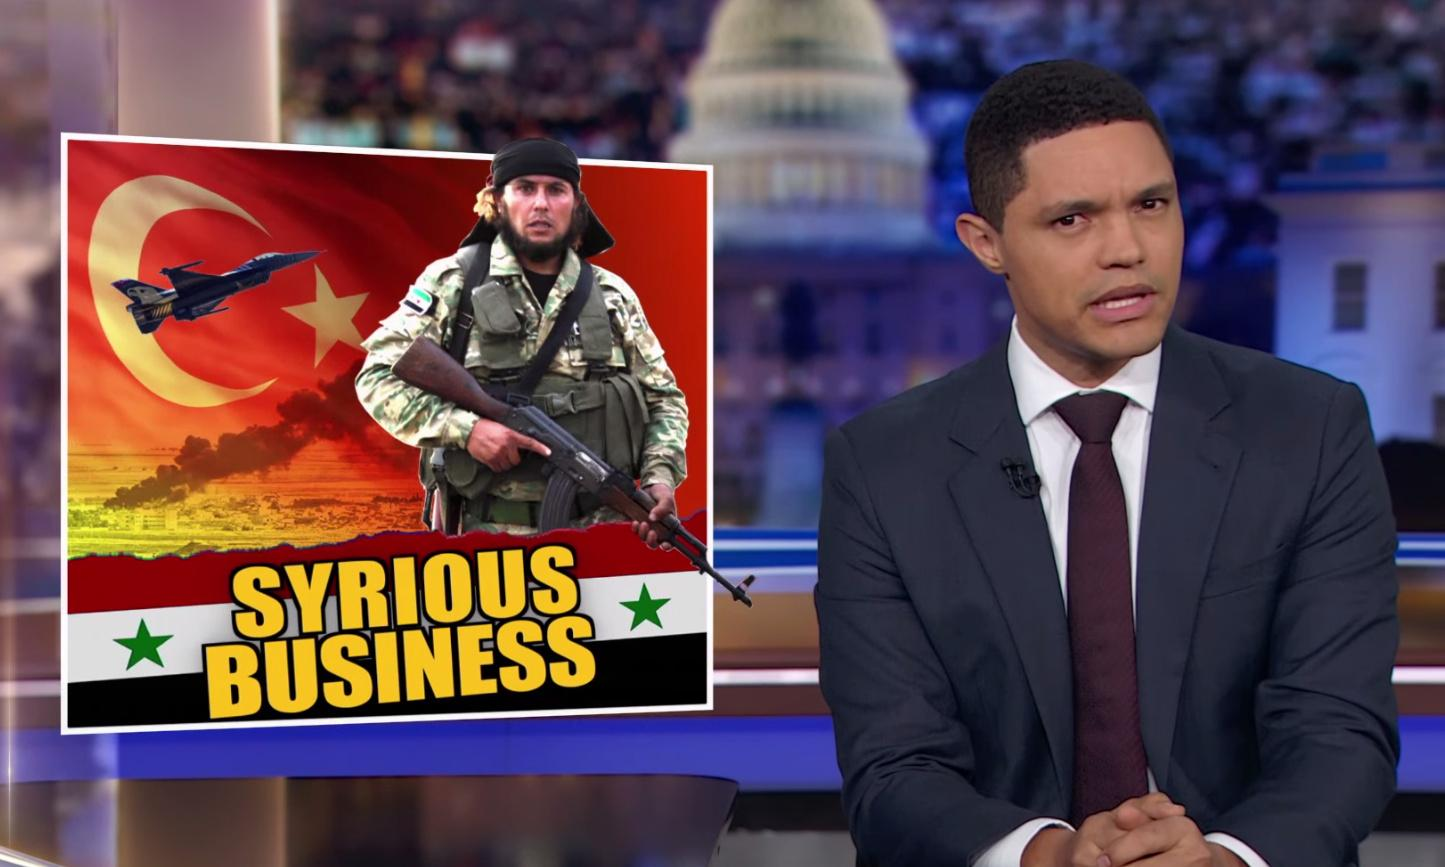 Trevor Noah: Trump the 'only person who could make the Middle East more chaotic'